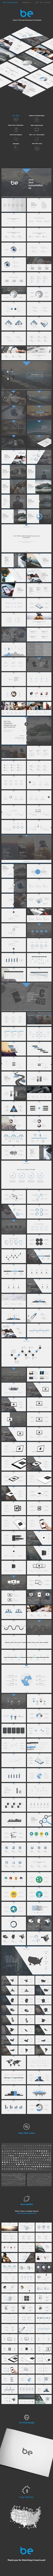 be Keynote — Keynote KEY #wide #chart • Available here → https://graphicriver.net/item/be-keynote/16799949?ref=pxcr